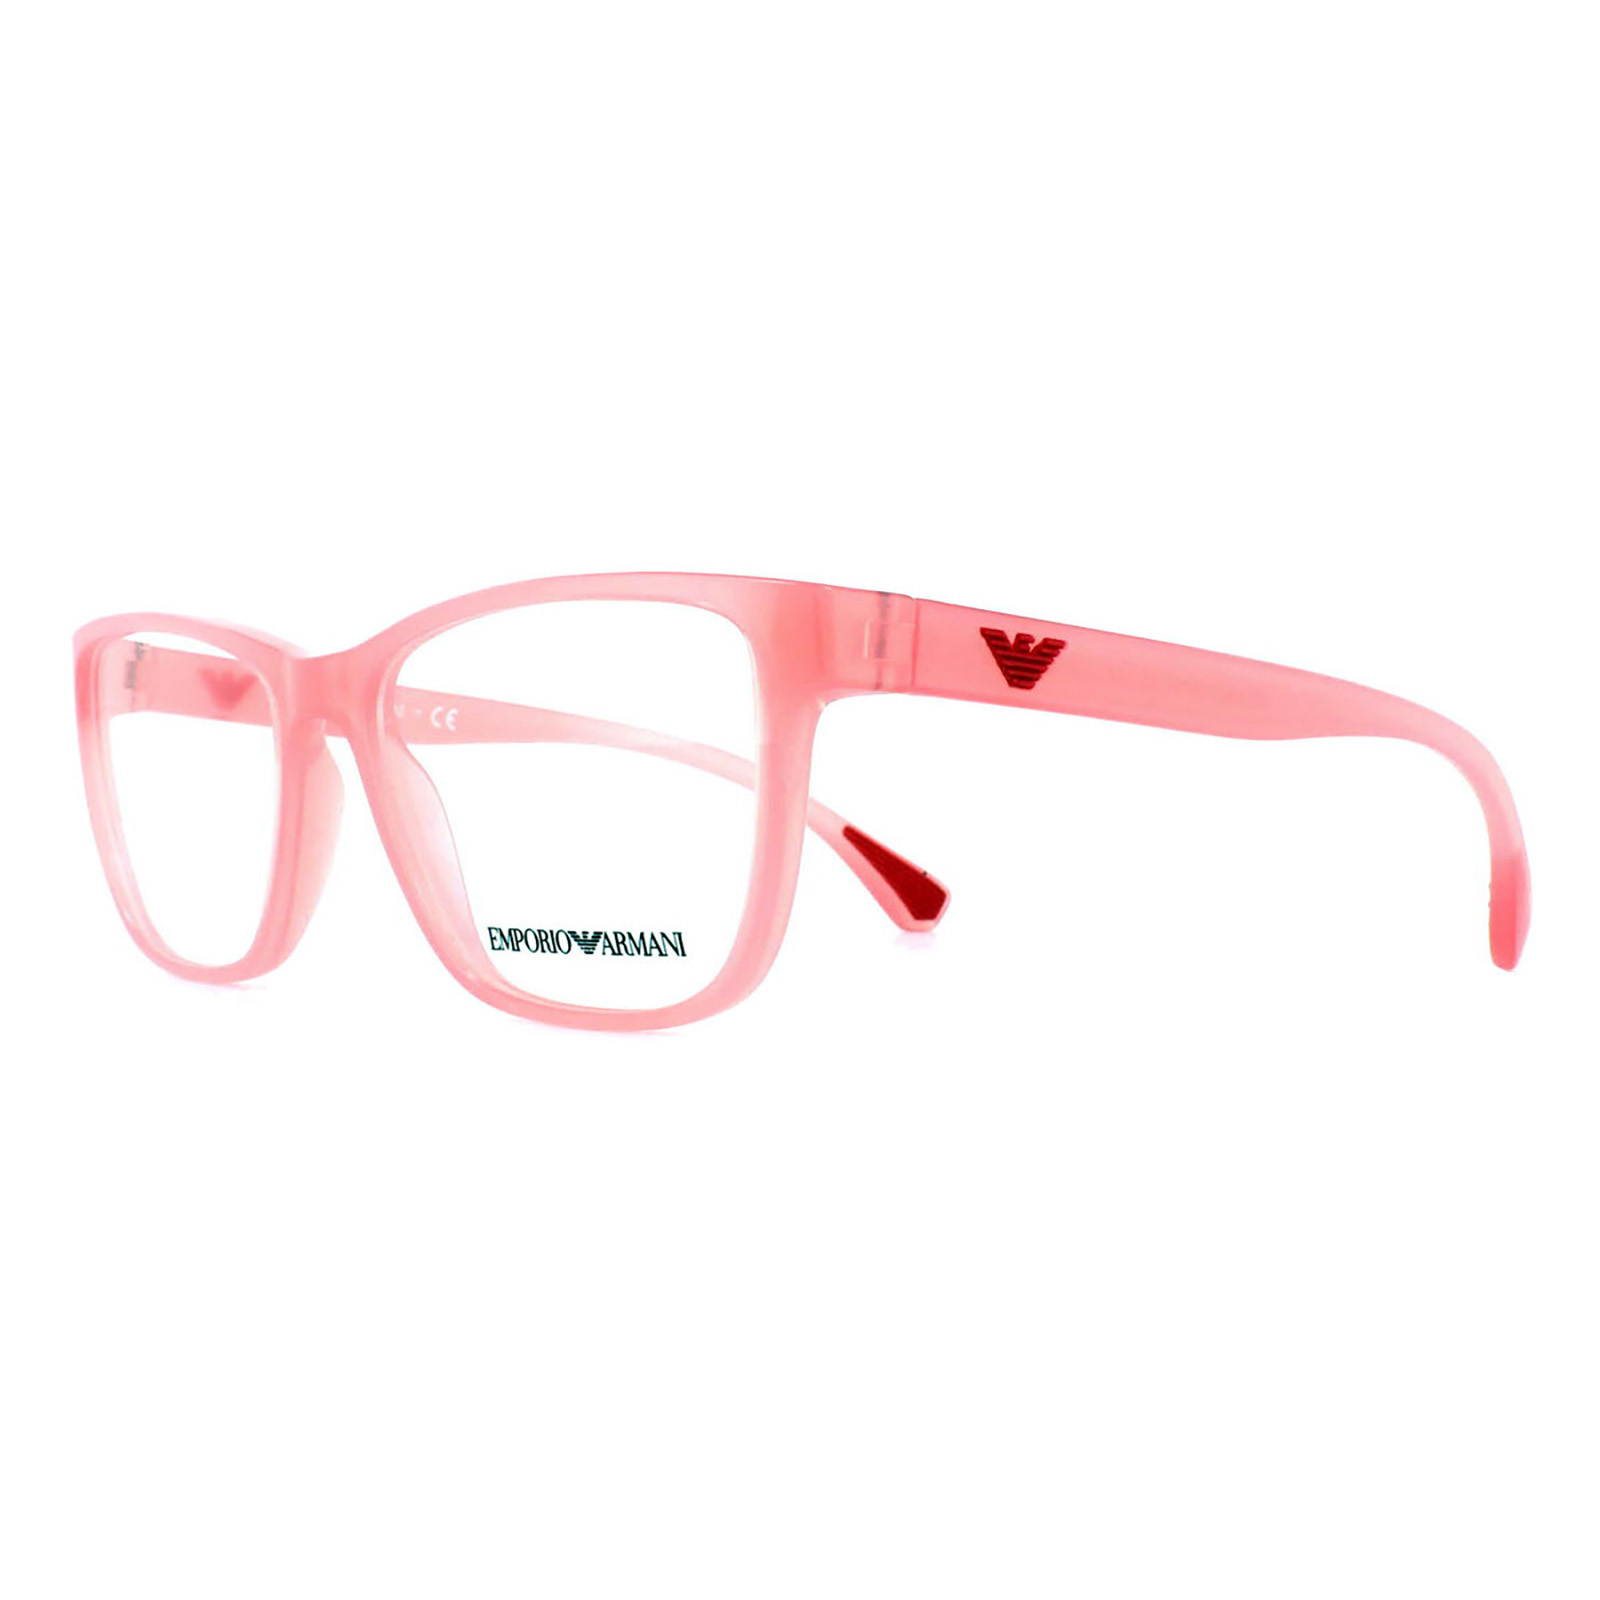 704de2b12fe ... Details about Emporio Armani Glasses Frames 3090 5507 Opal Coral Womens  52mm Sentinel ...